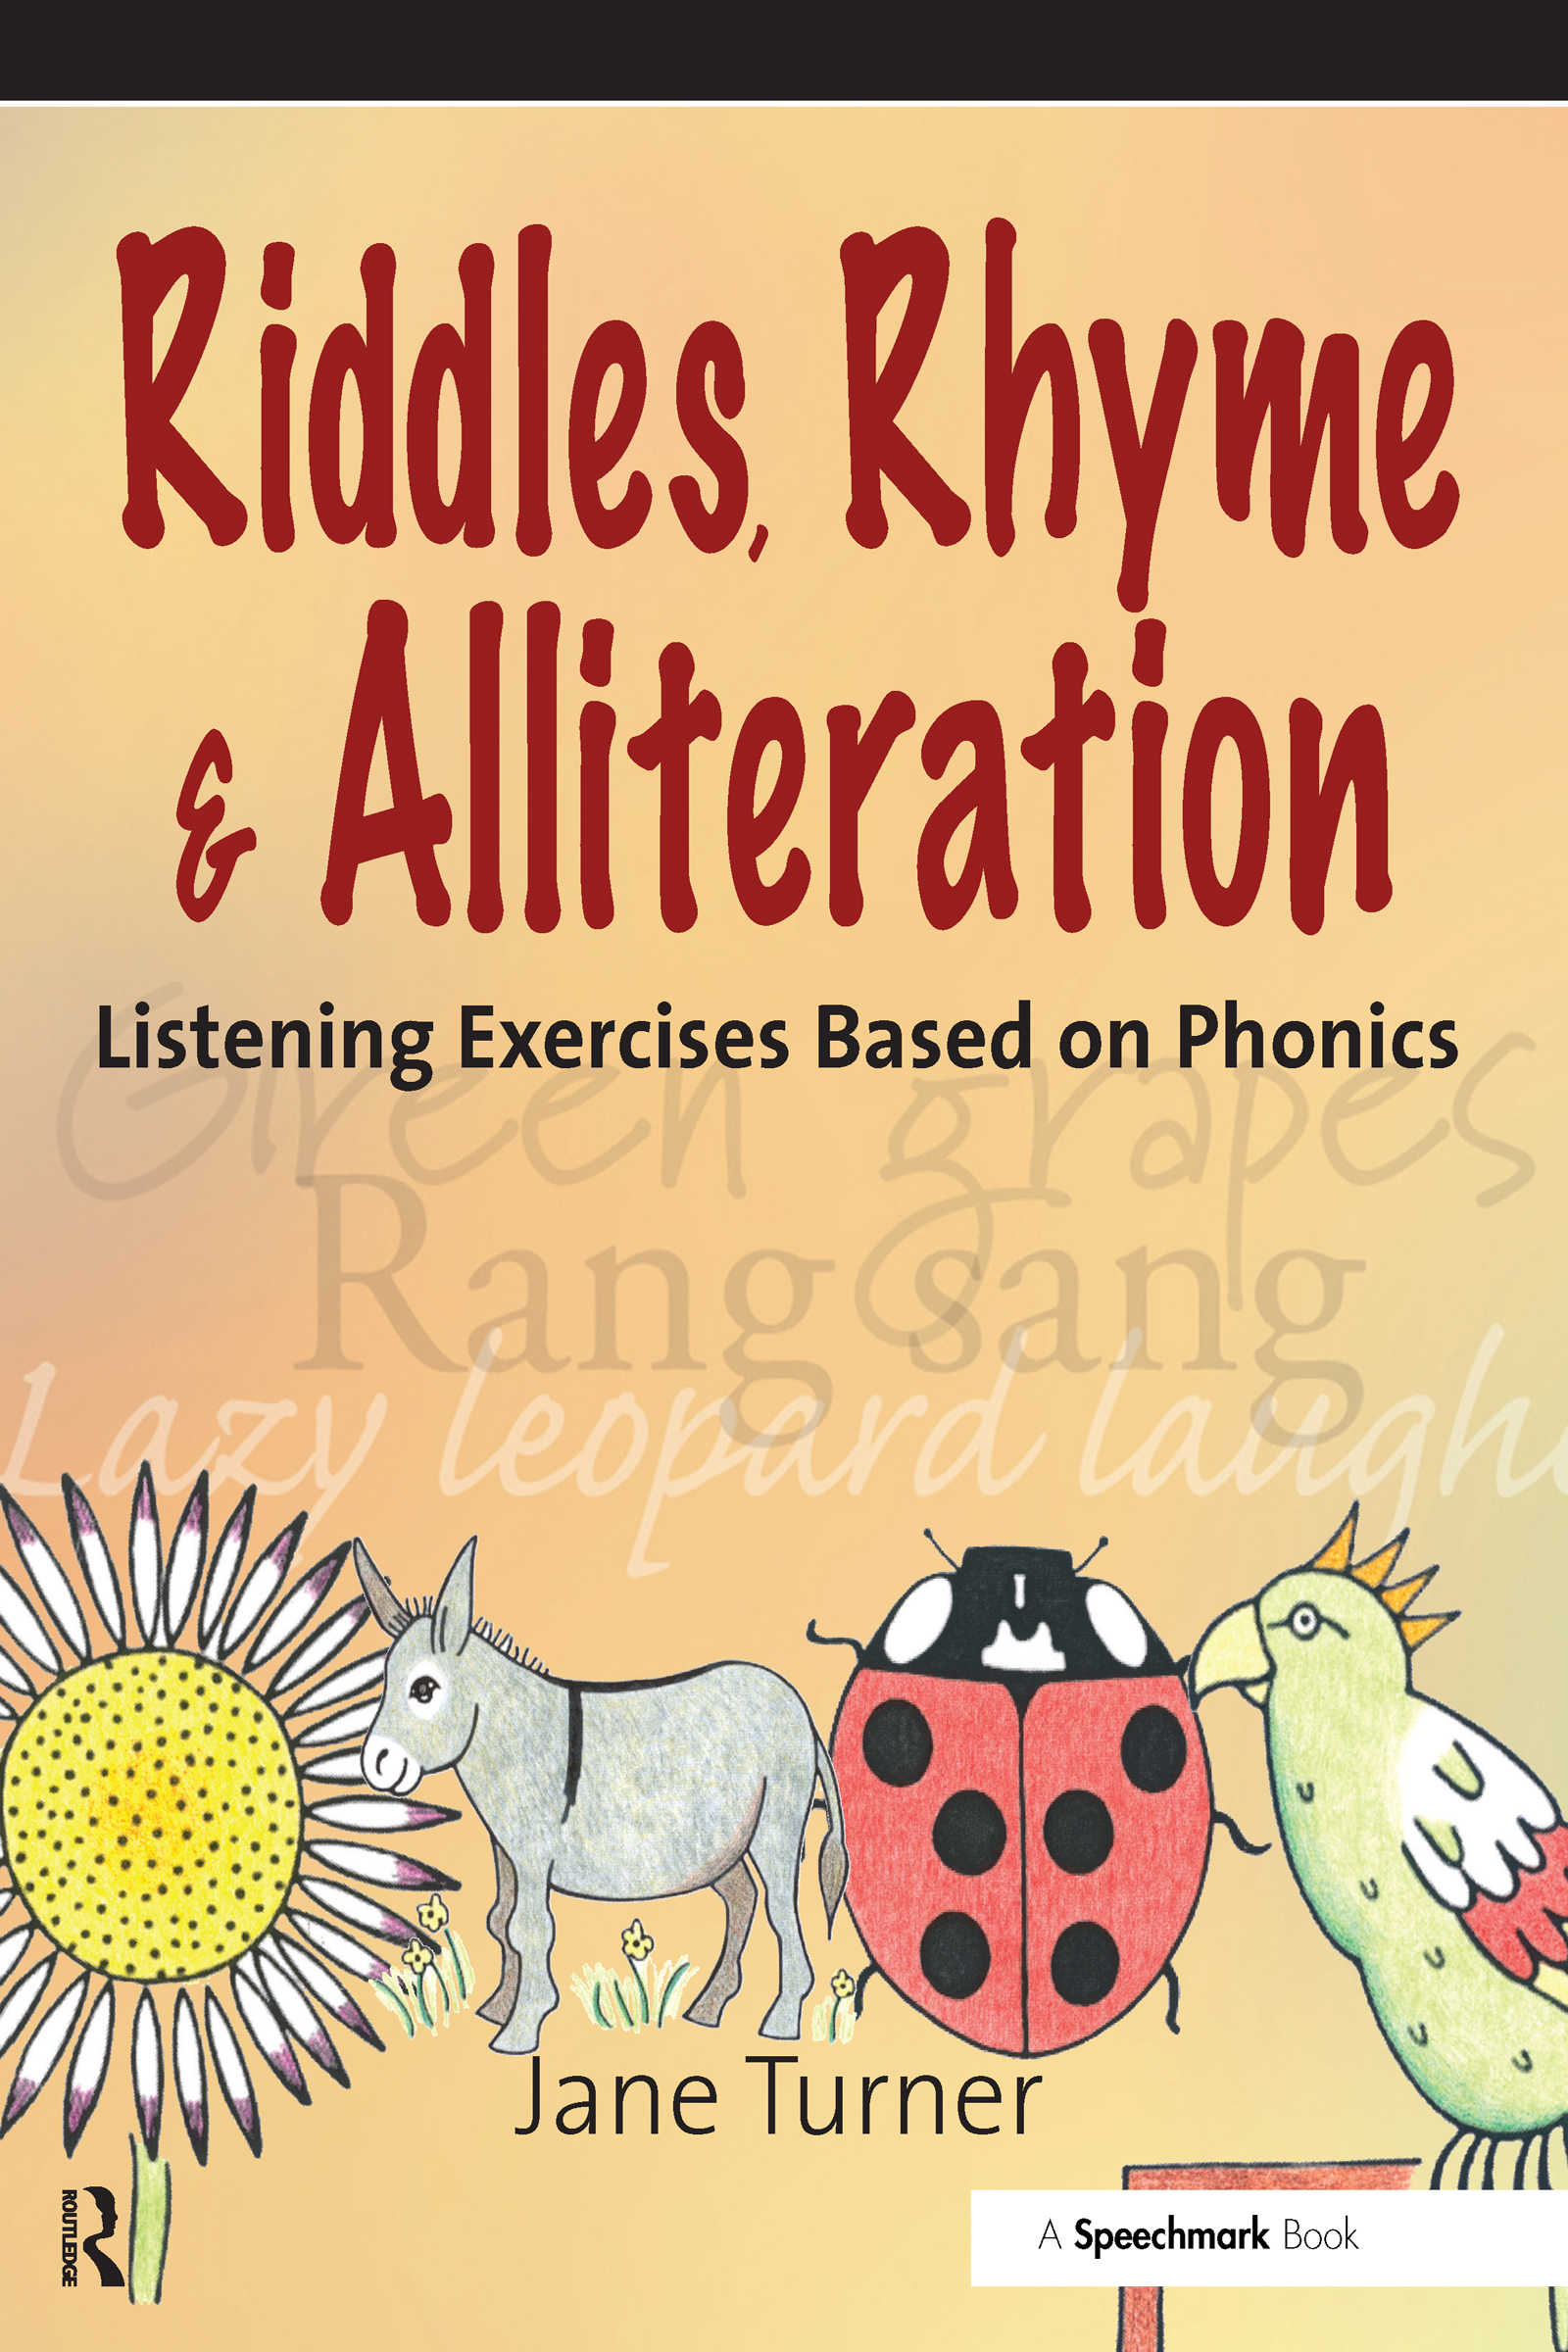 Riddles, Rhymes and Alliteration: Listening Exercises Based on Phonics, 1st Edition (Paperback) book cover